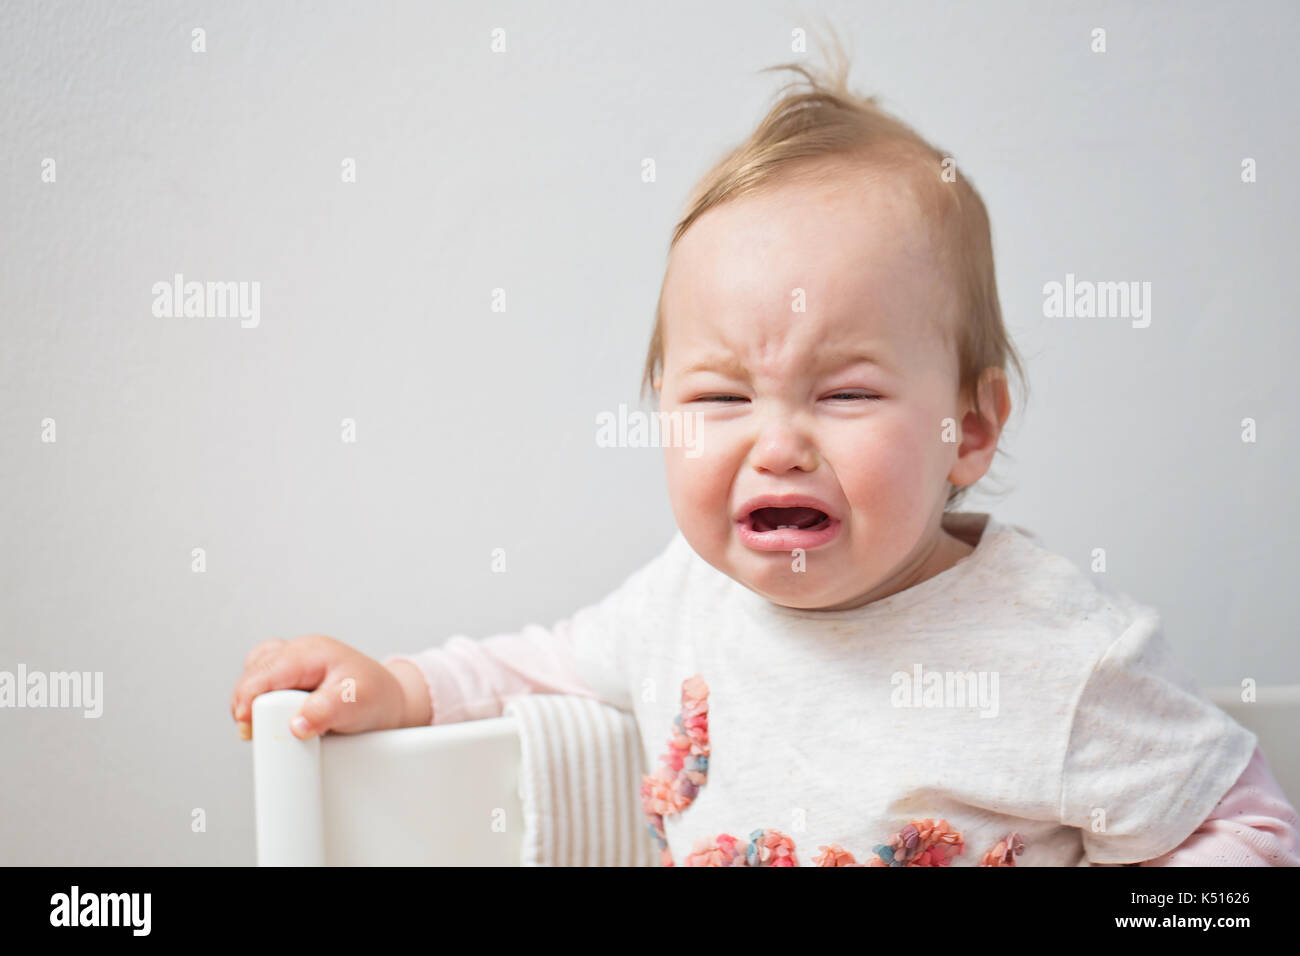 Cry Baby Year Stock Photos & Cry Baby Year Stock Images ...